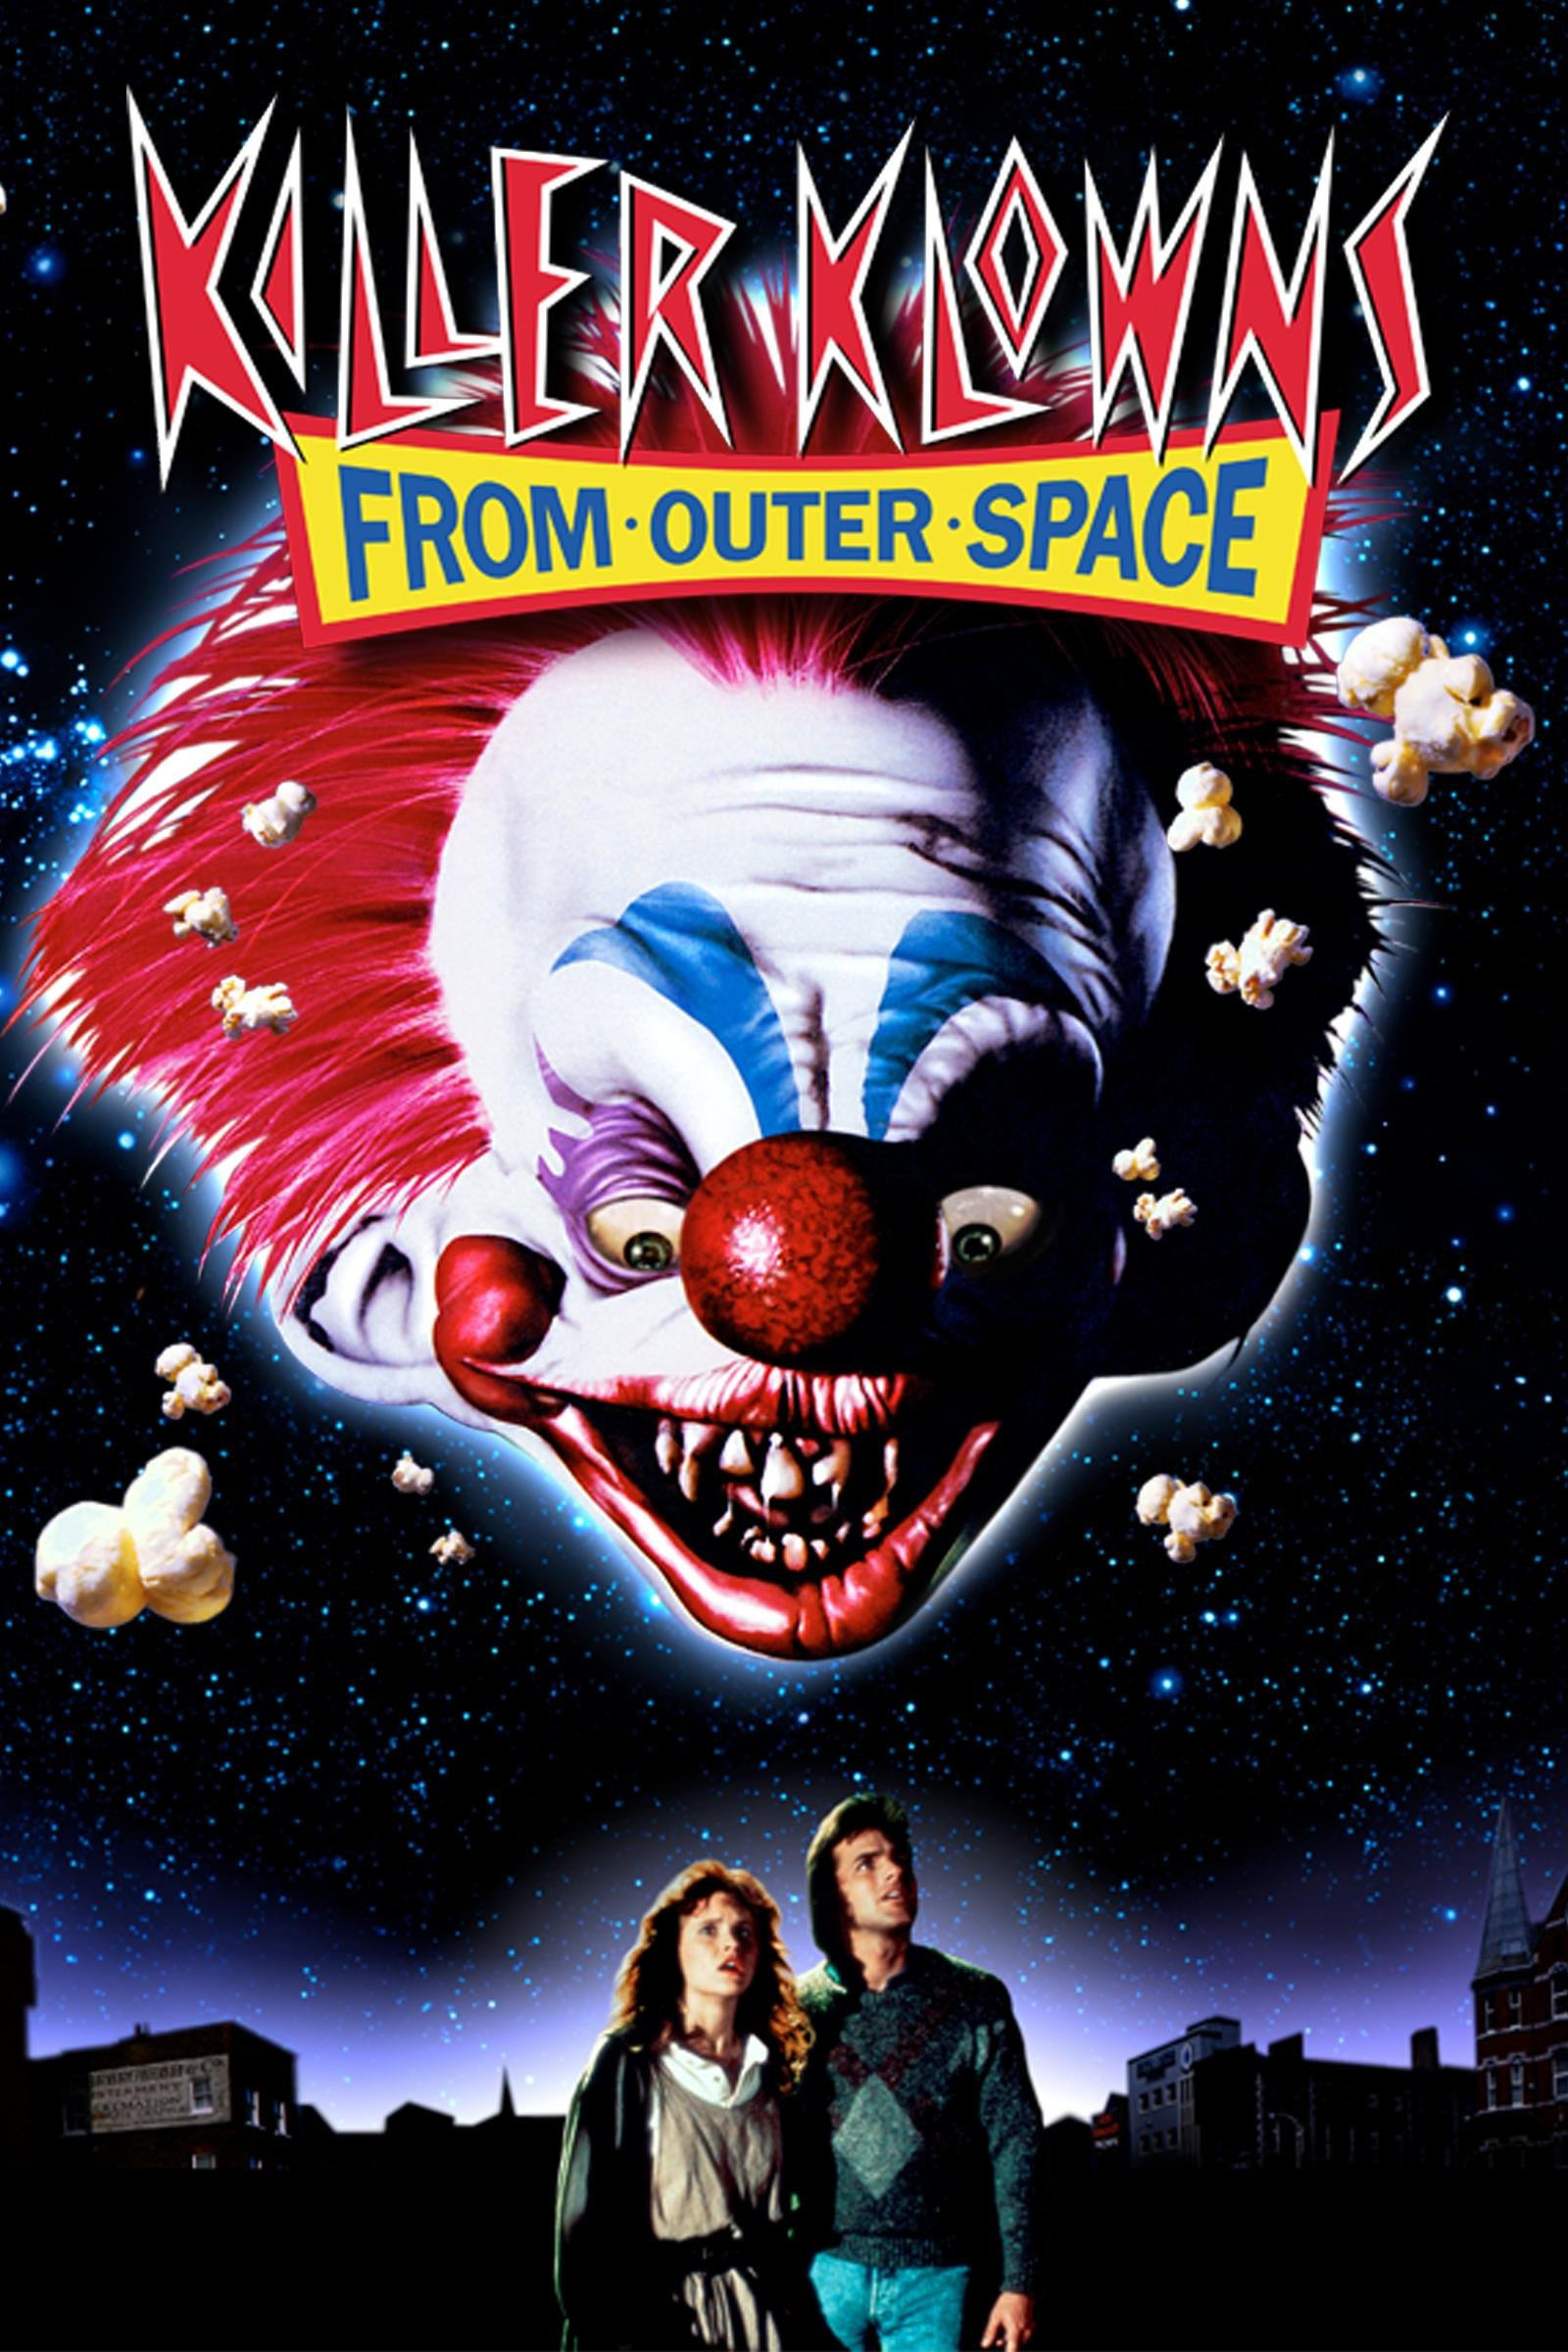 Killer Klowns from Outer Space review: Newly restored and as weird as ever